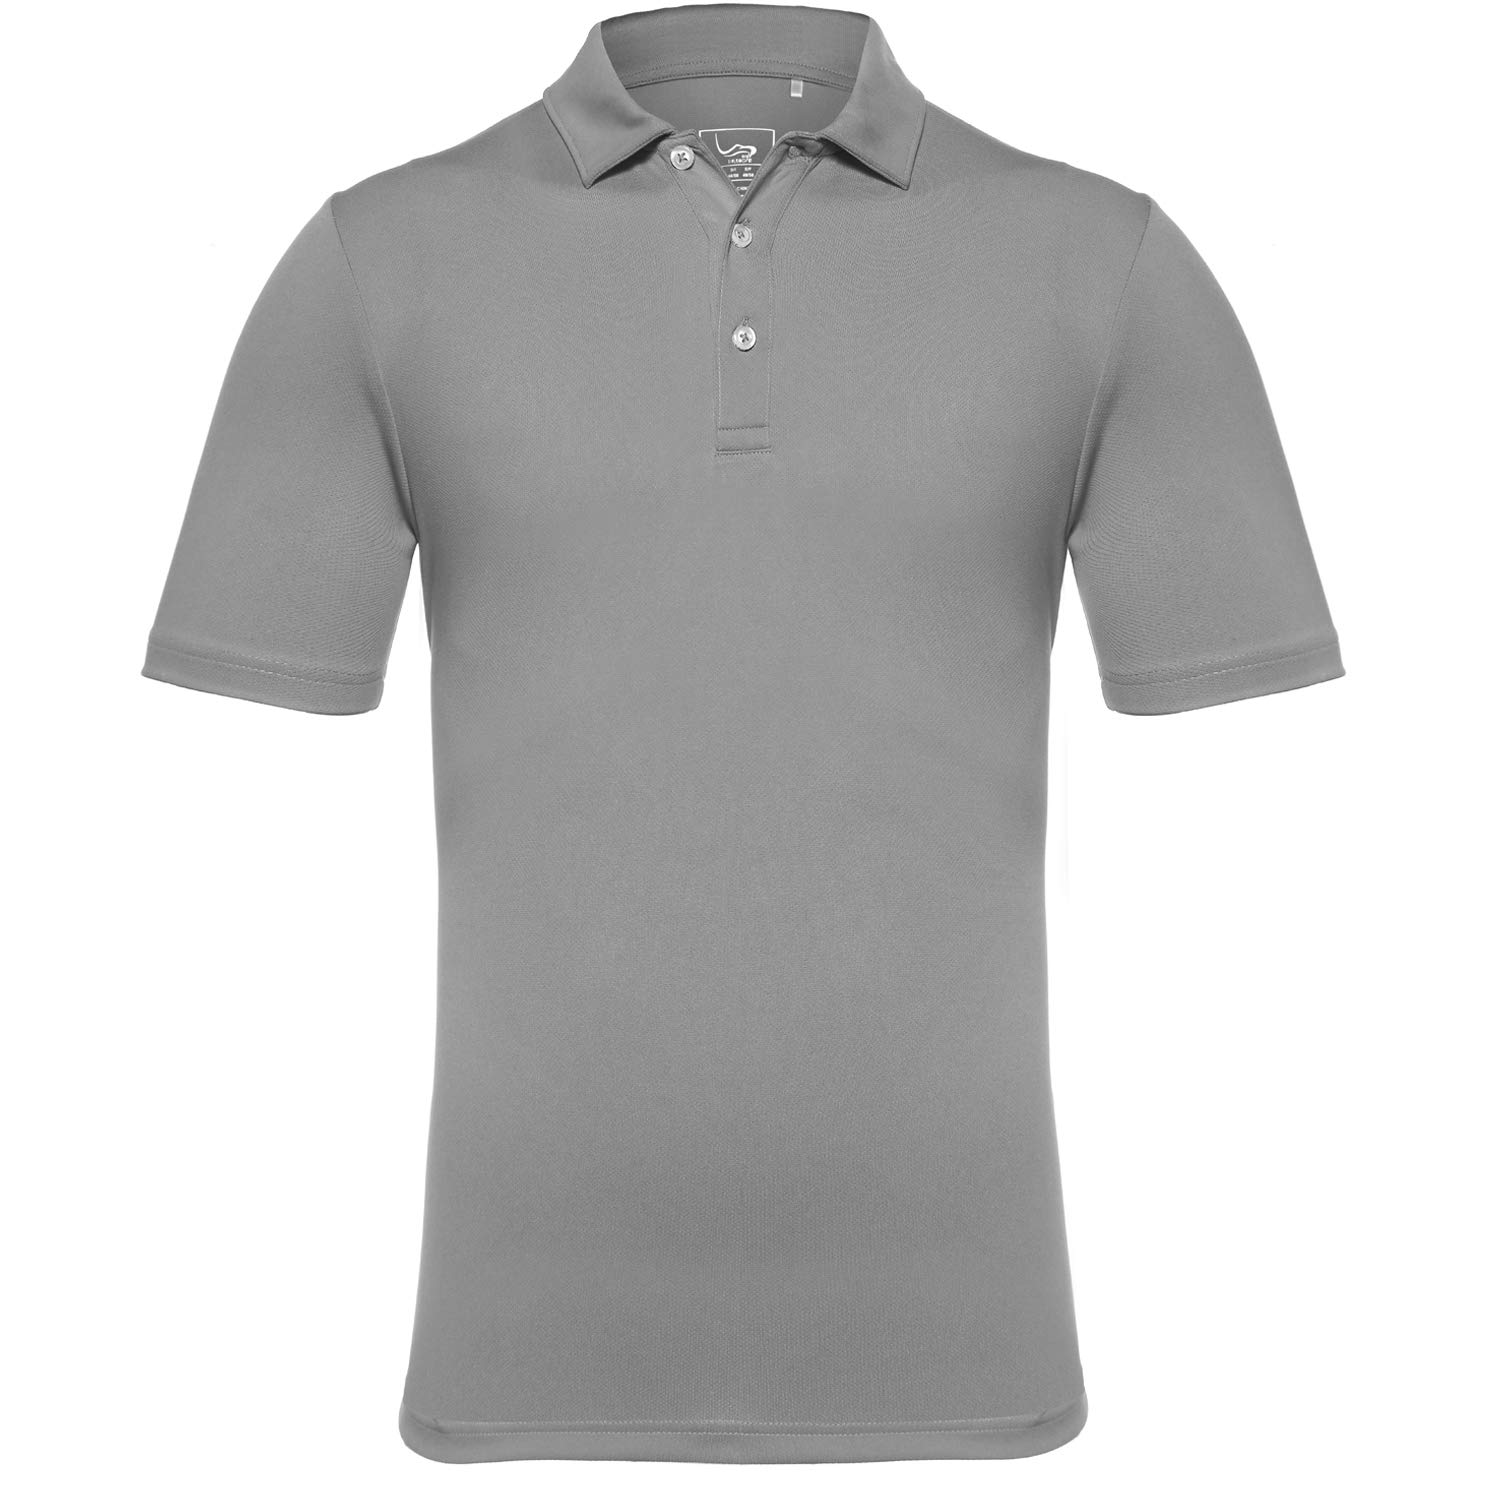 b2902701 EAGEGOF Men's Shirts Short Sleeve Tech Performance Golf Polo Dri-Fit Shirt  Standard Fit product